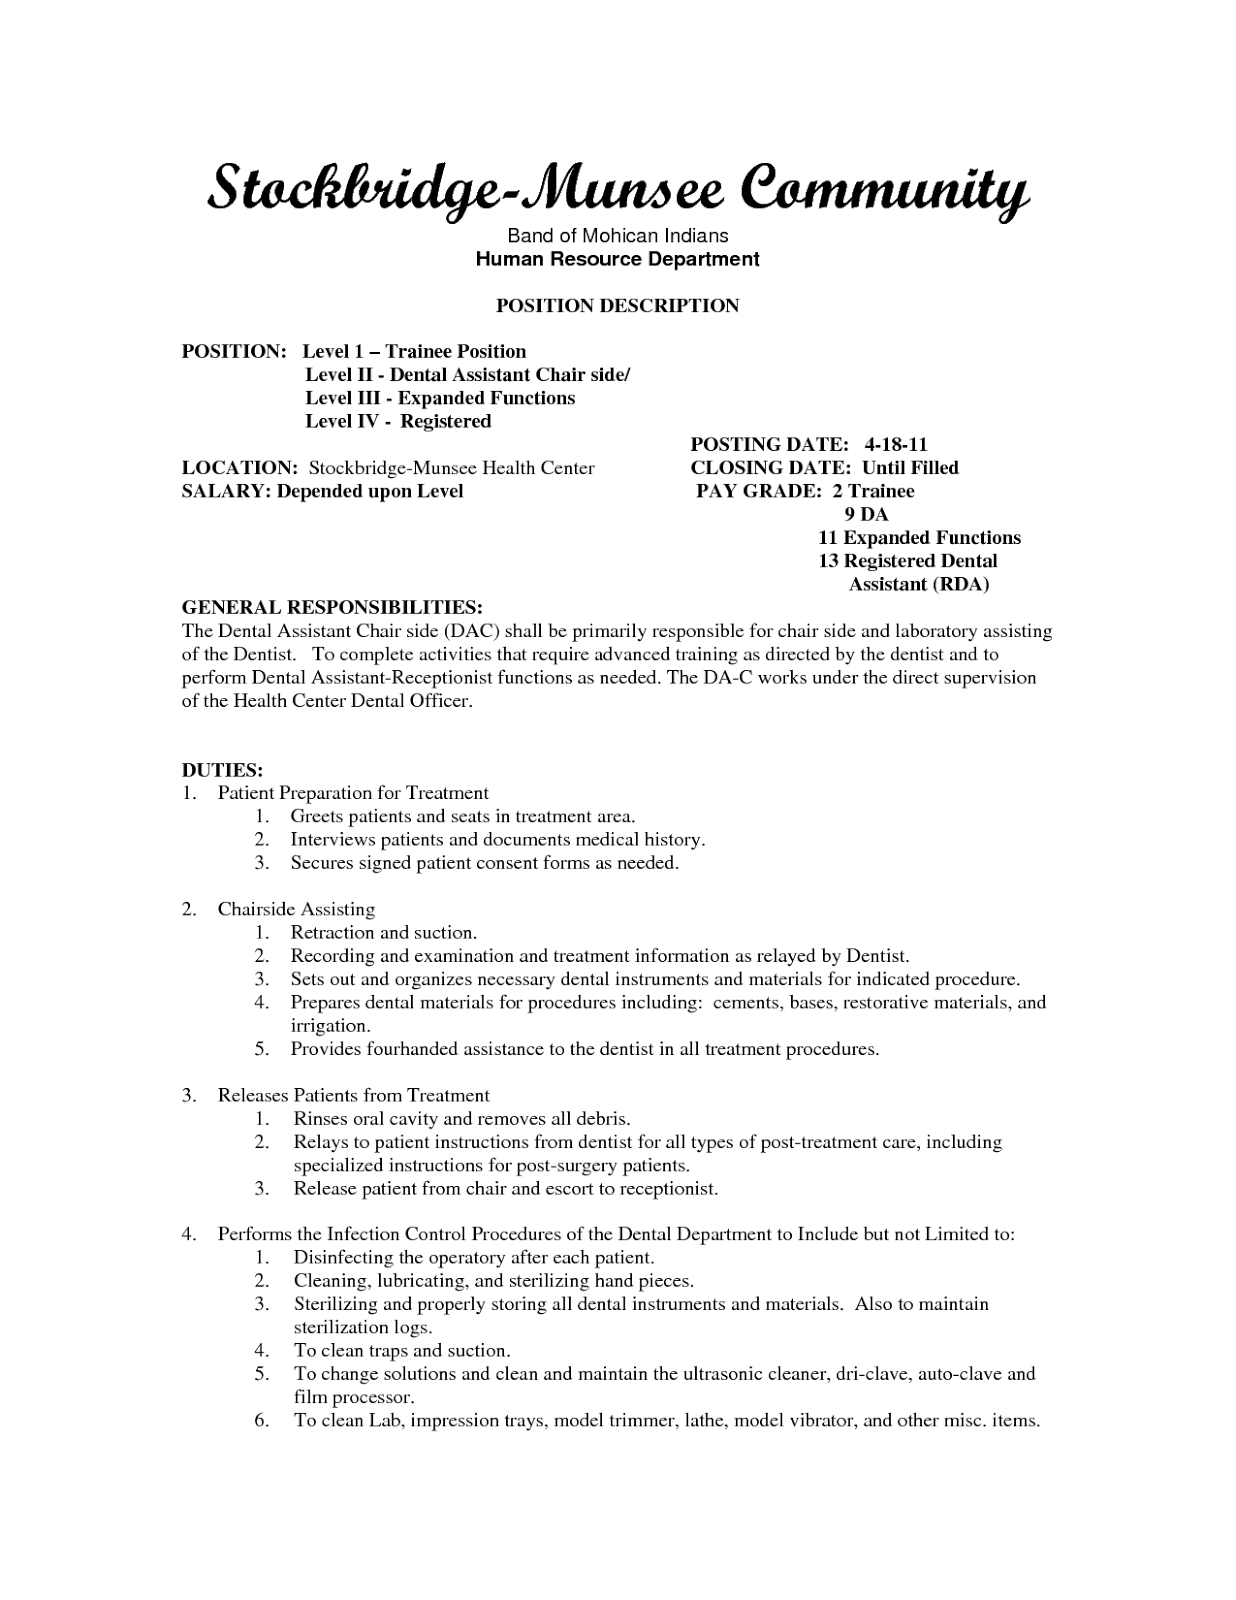 Sample Of Dental Assistant Resume With No Experience | Free ...